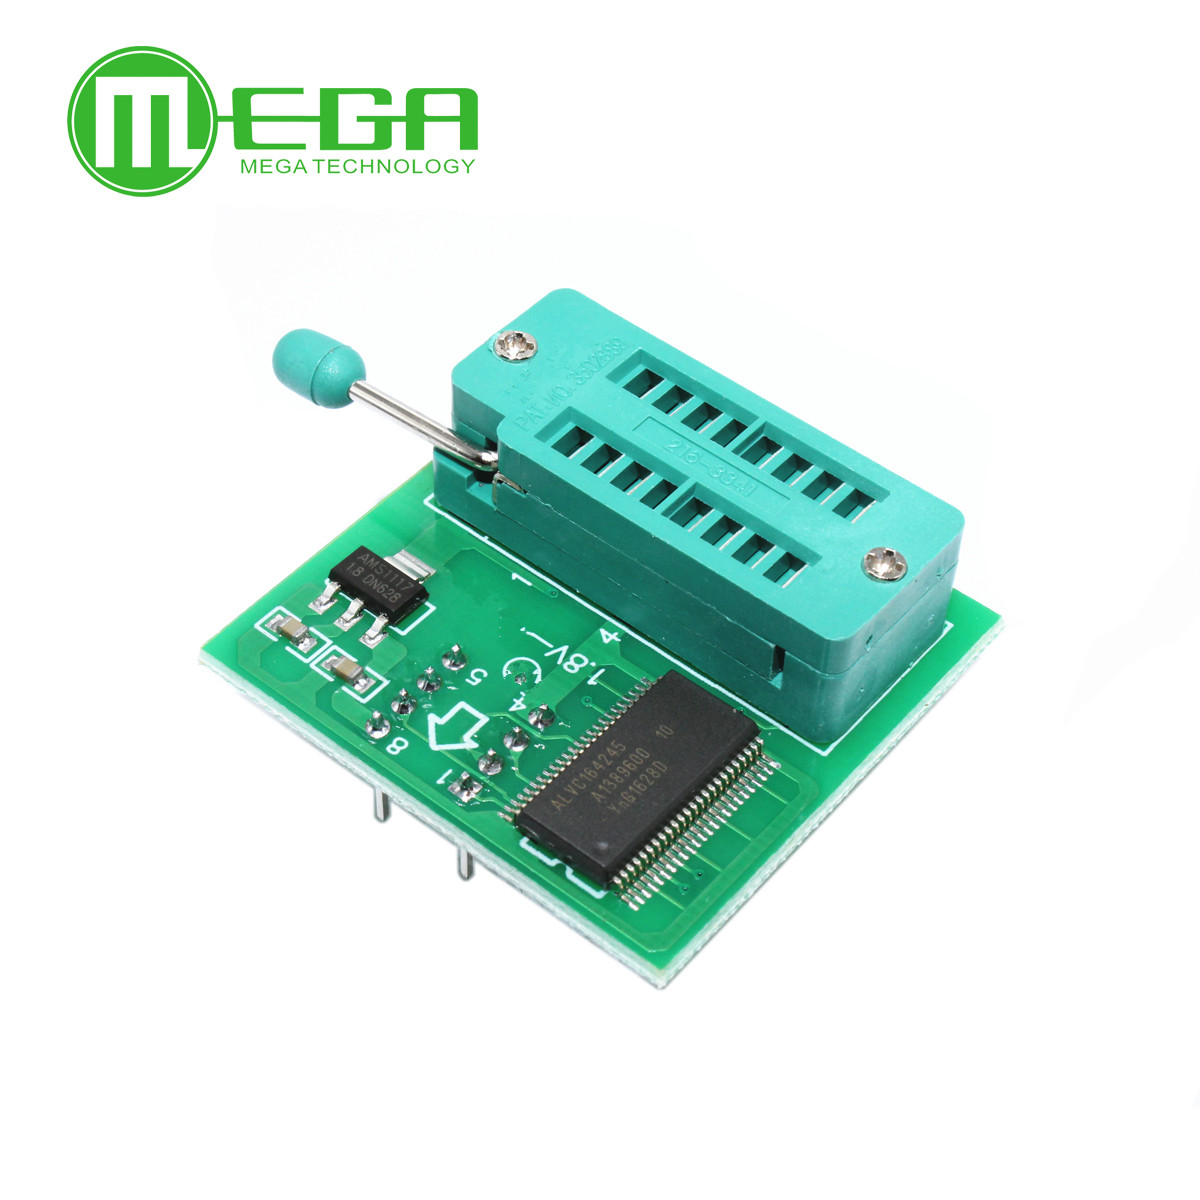 1.8V Adapter 1.8V SPI Flash SOP8 DIP8 W25 MX25 Use On Programmers TL866CS TL866A EZP2010 EZP2013 CH341